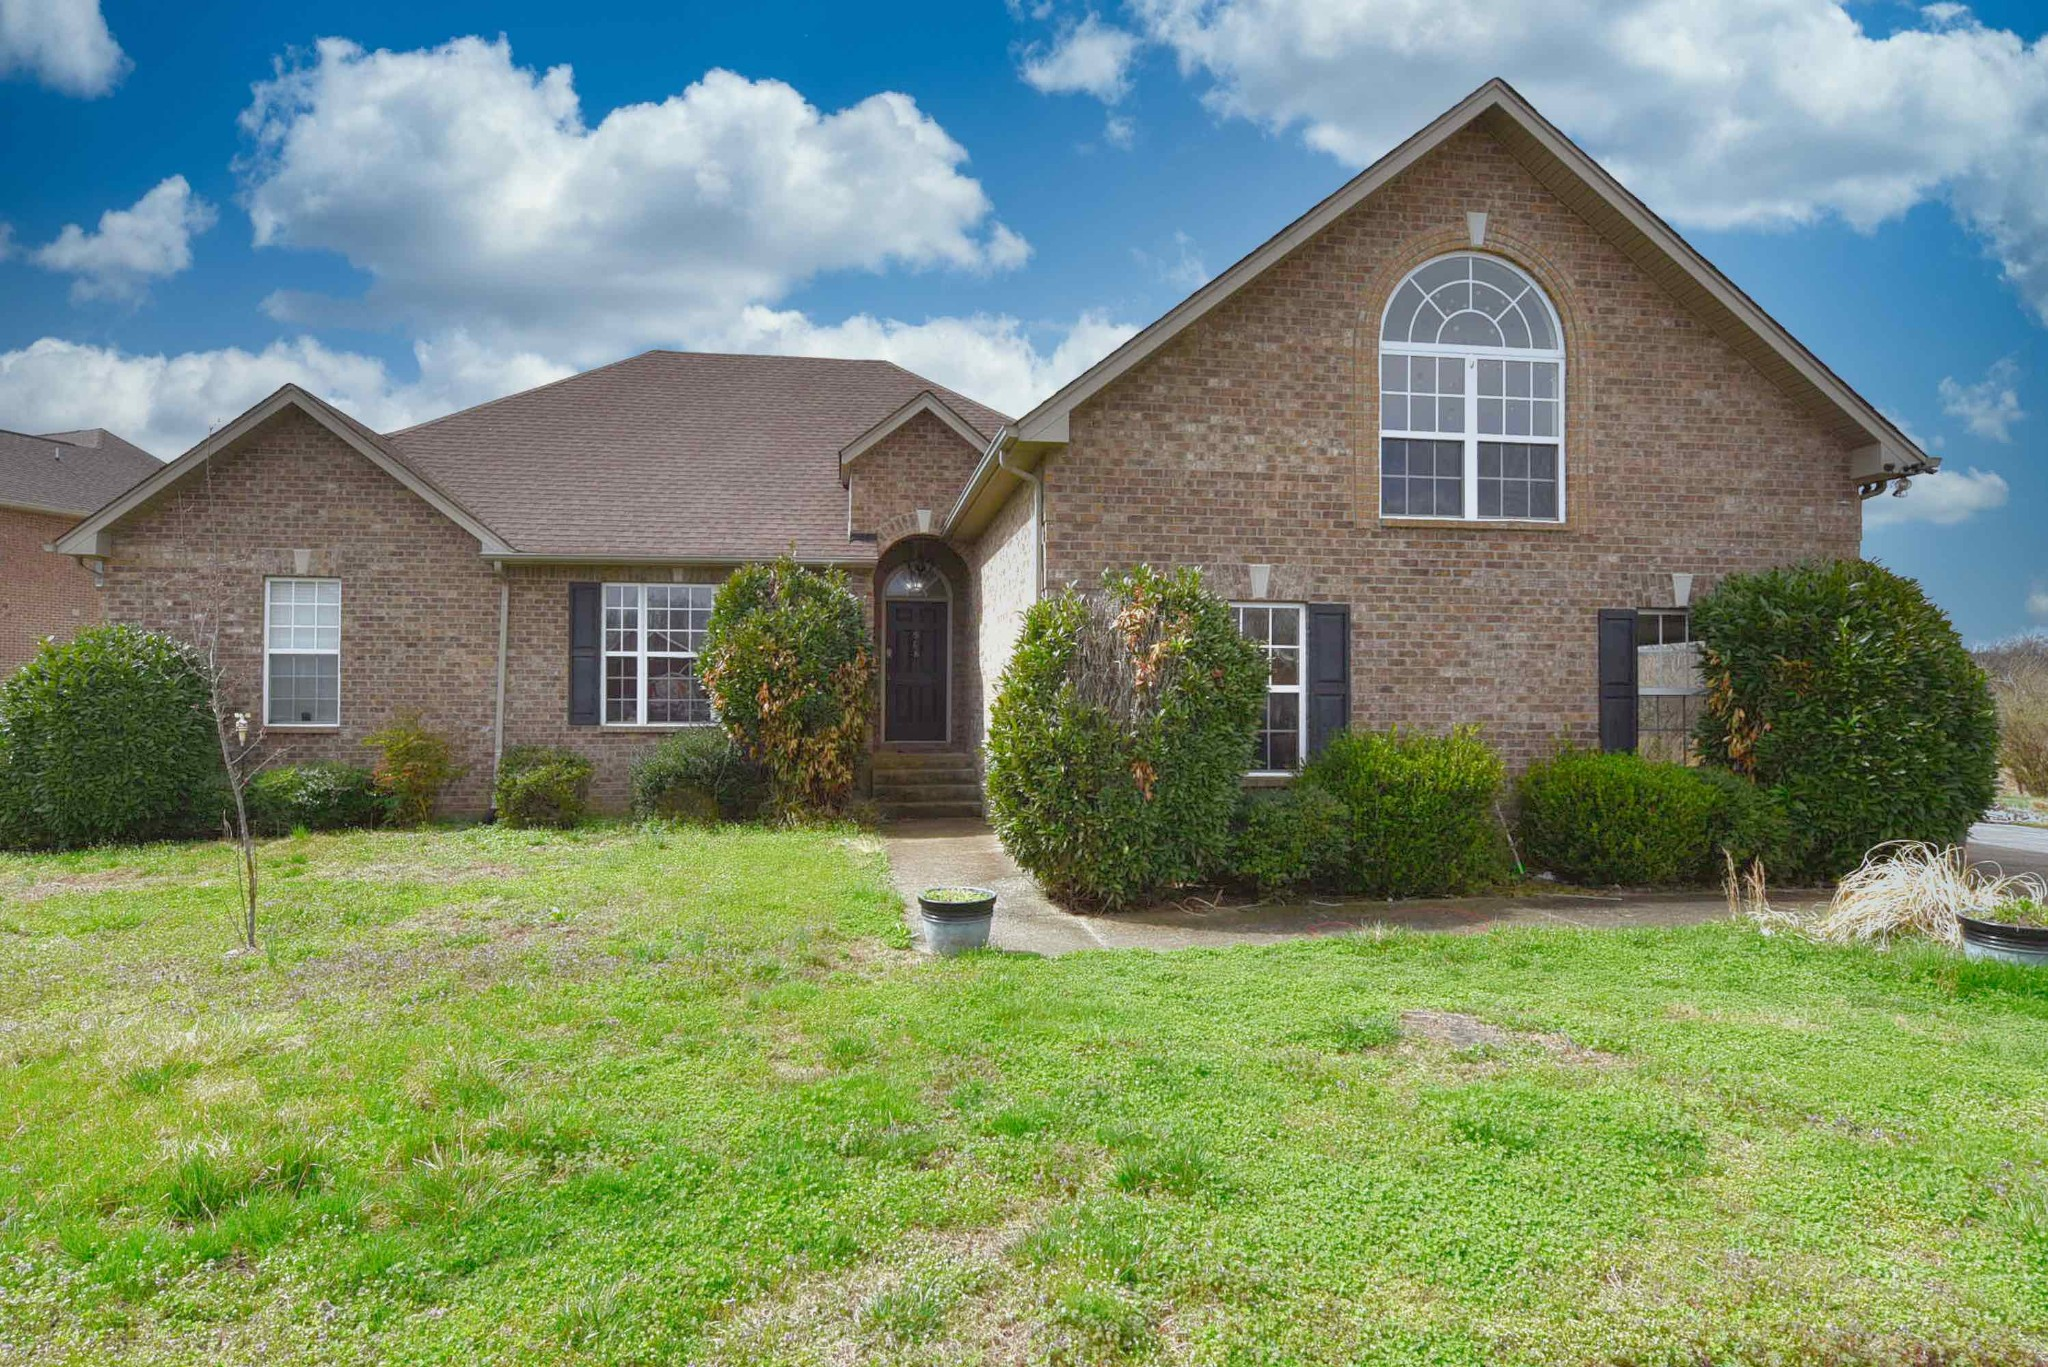 908 Weststar Ct Property Photo - Old Hickory, TN real estate listing